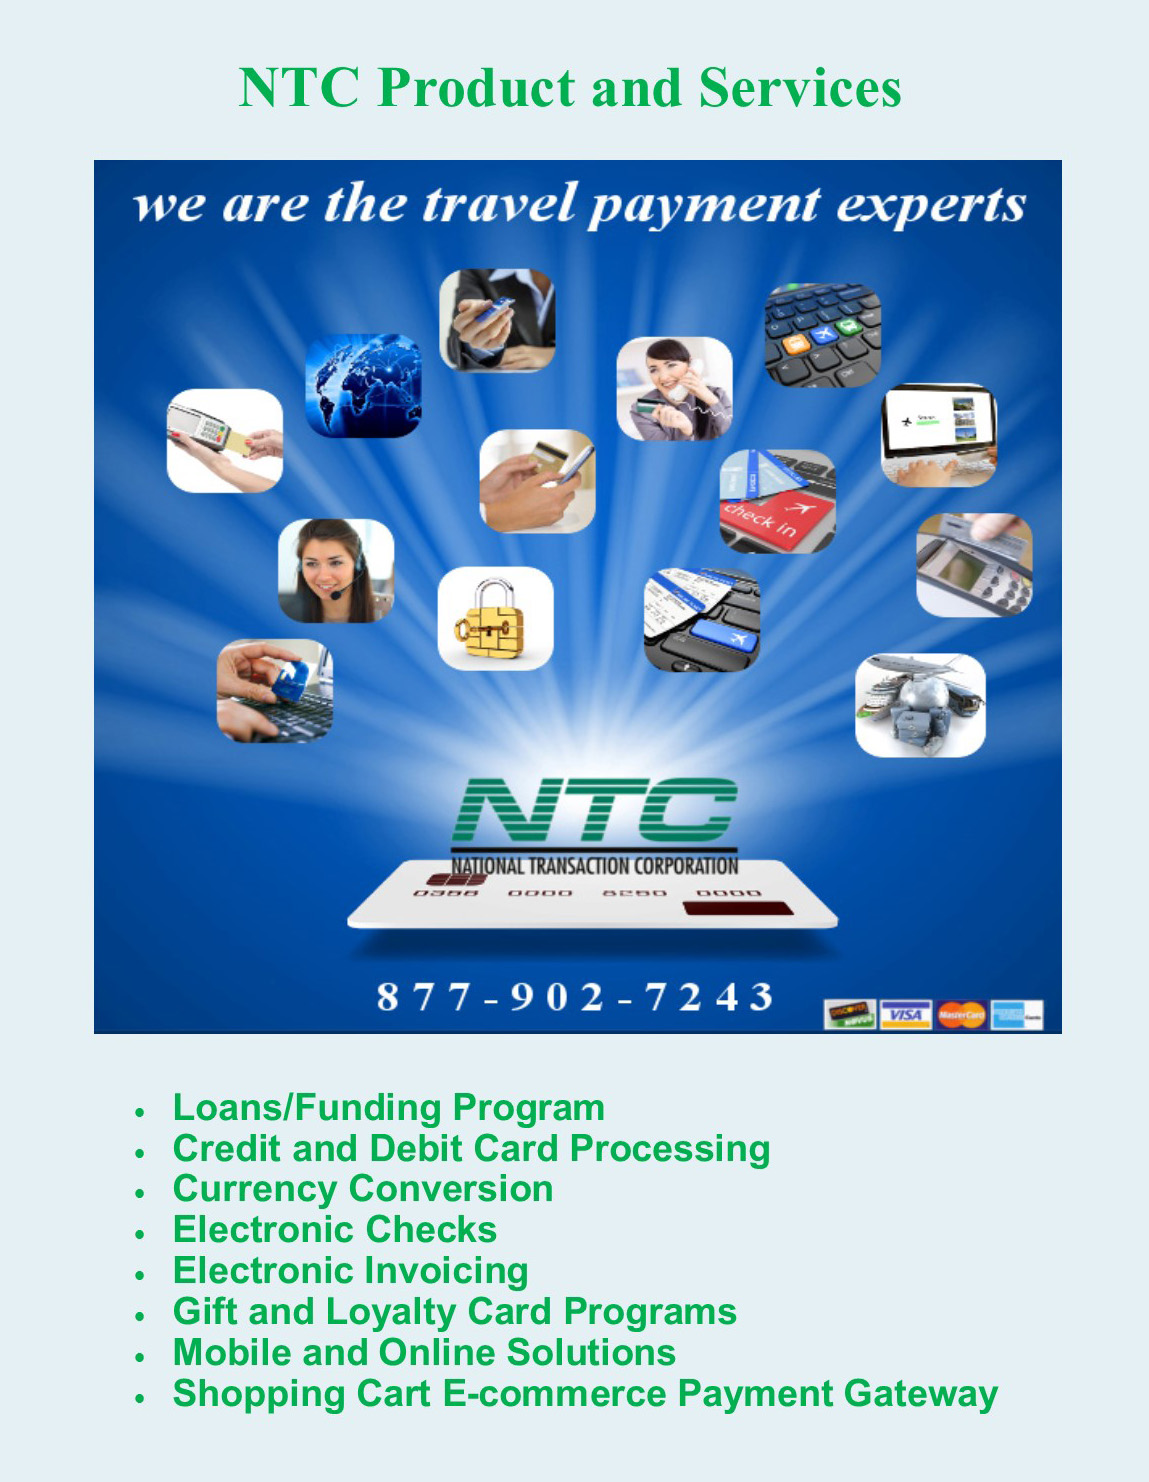 NTC Product and Services